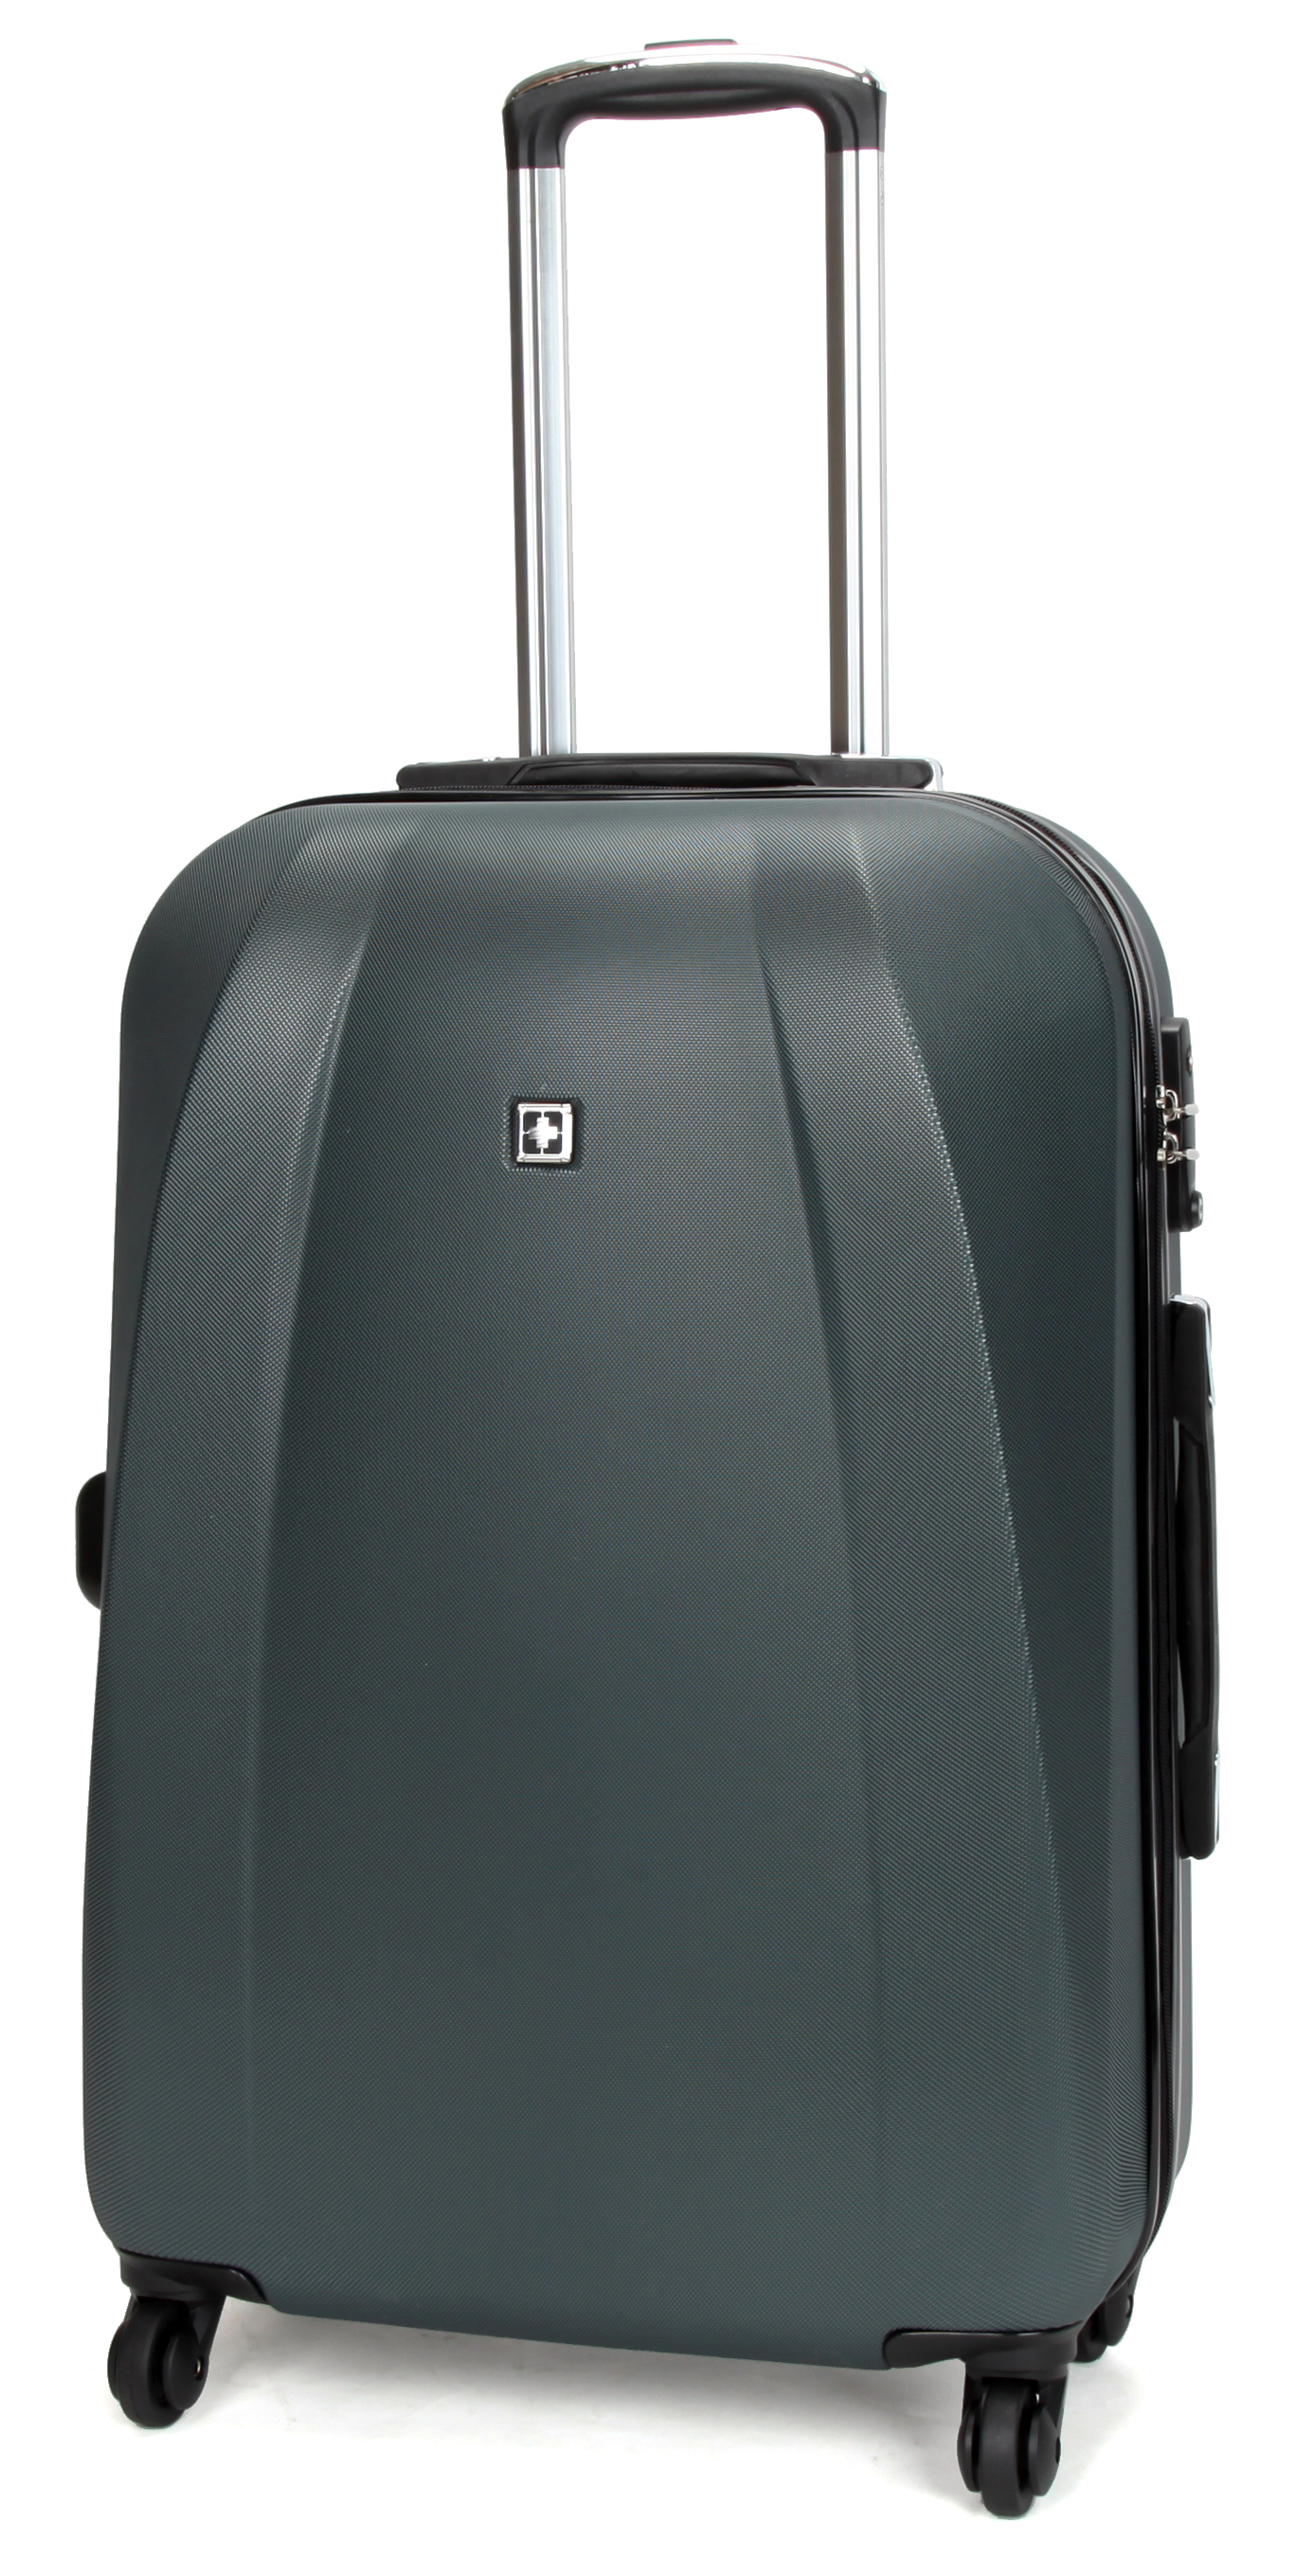 Business Leisure Campus Luggage